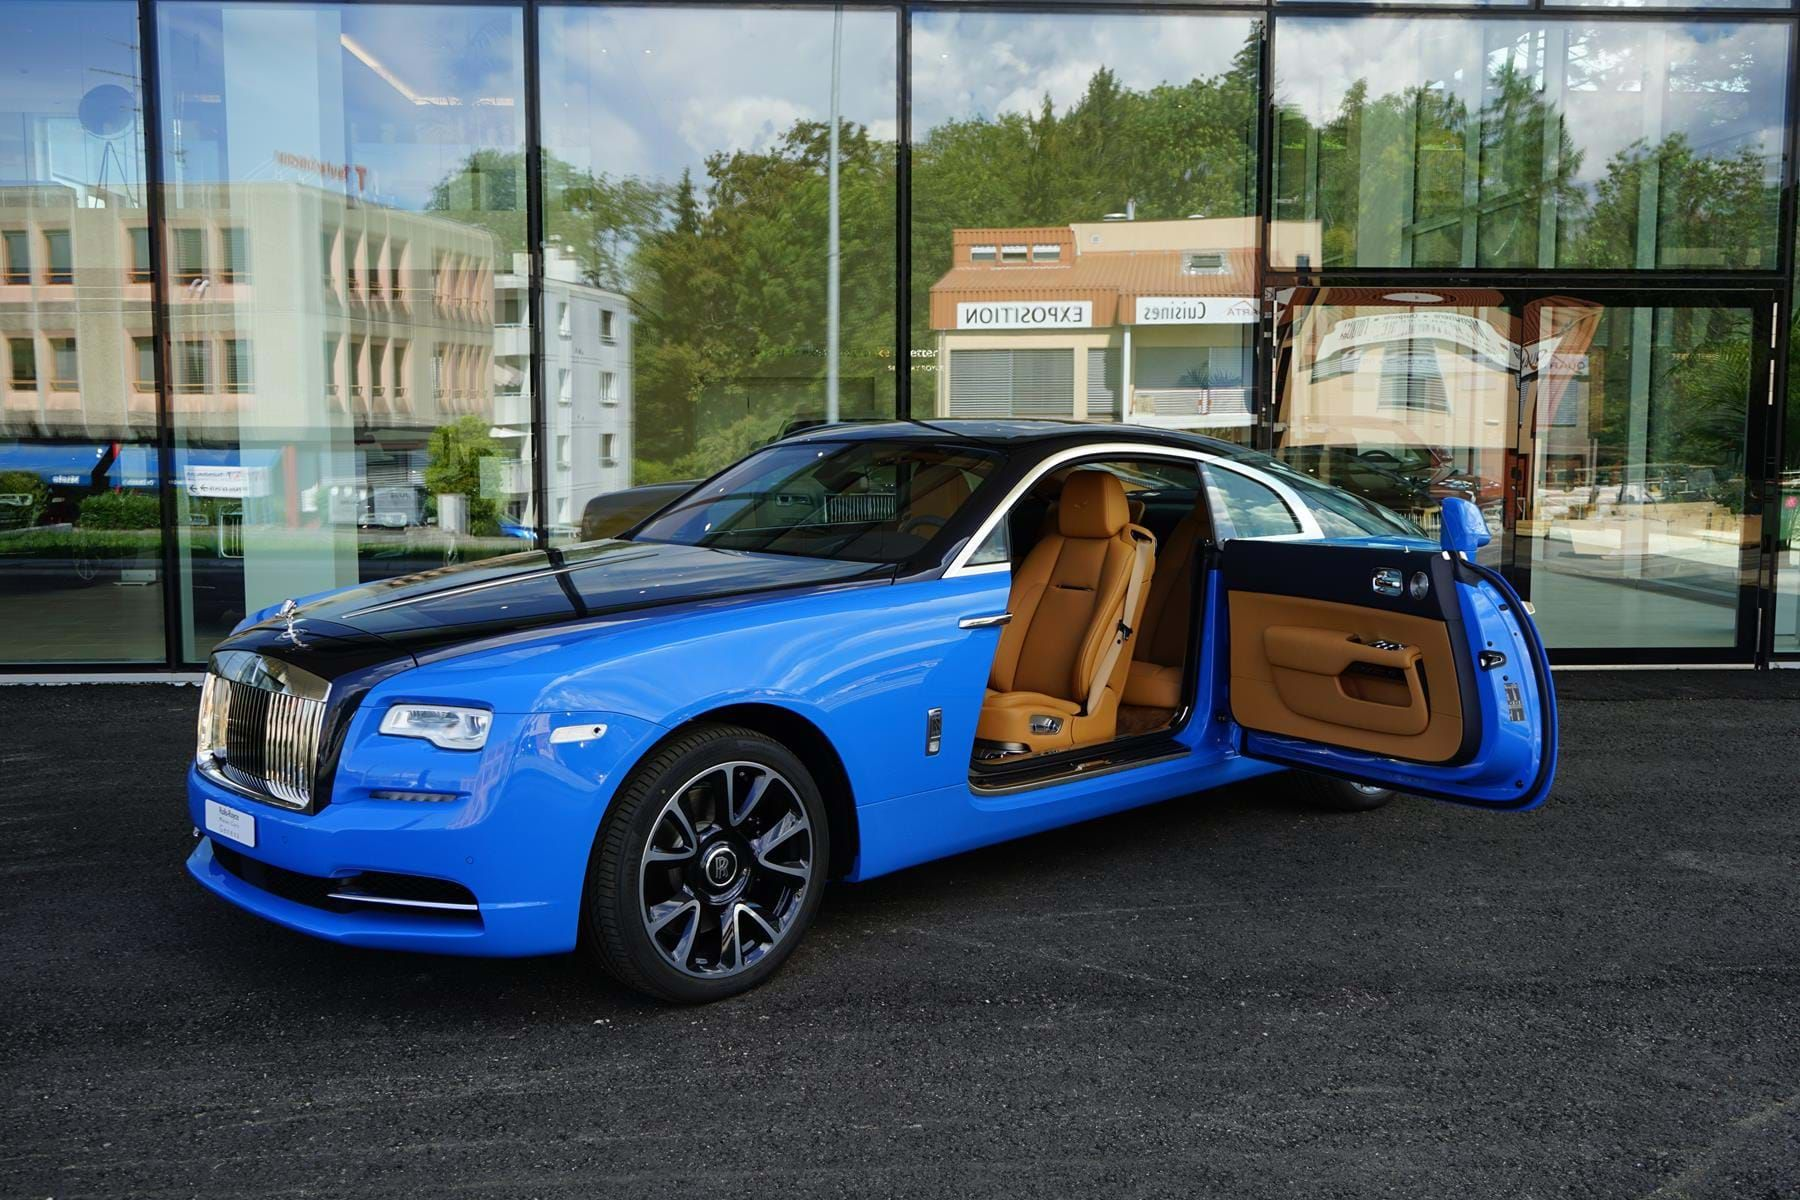 Rolls Royce Wraith My2108 One Of One French Racing Wraith Luxury Pulse Cars Switzerland For Sale On Luxurypulse In 2020 Rolls Royce Rolls Royce Wraith Racing